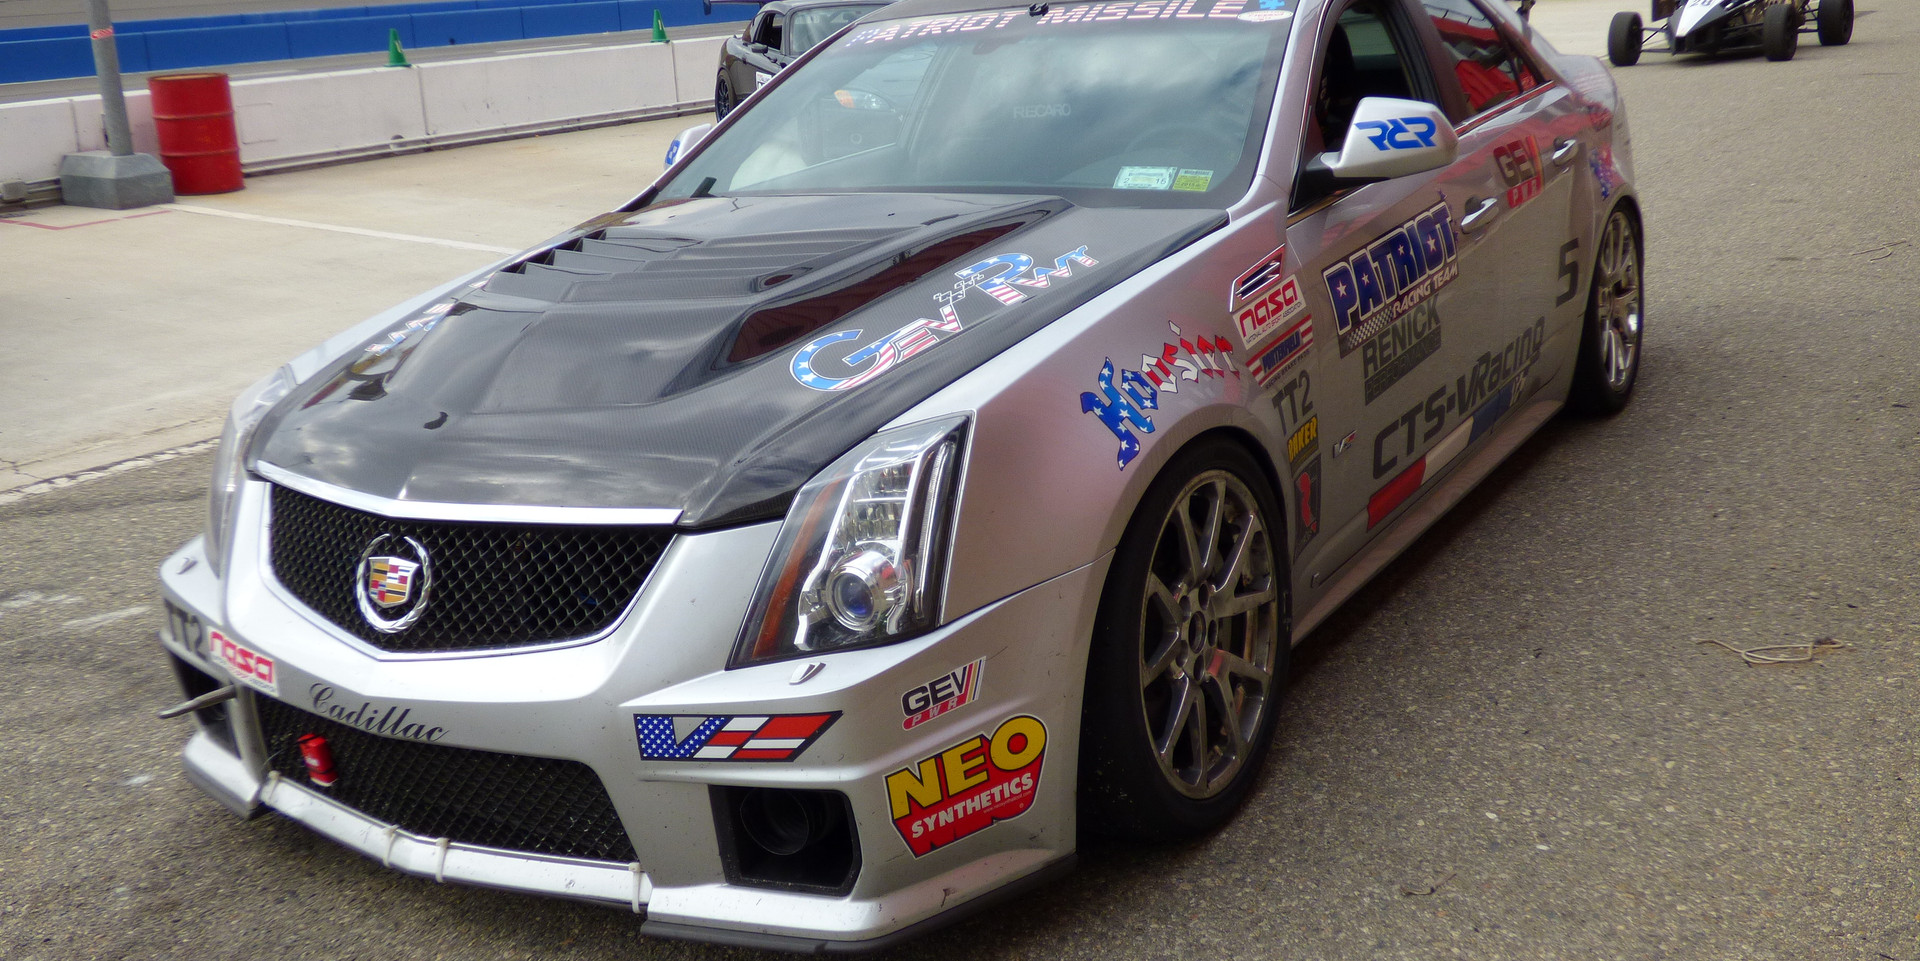 CTS-V Racing at Cadillac Challenge: Round 1 at Autoclub Speedway (2-22-2015)